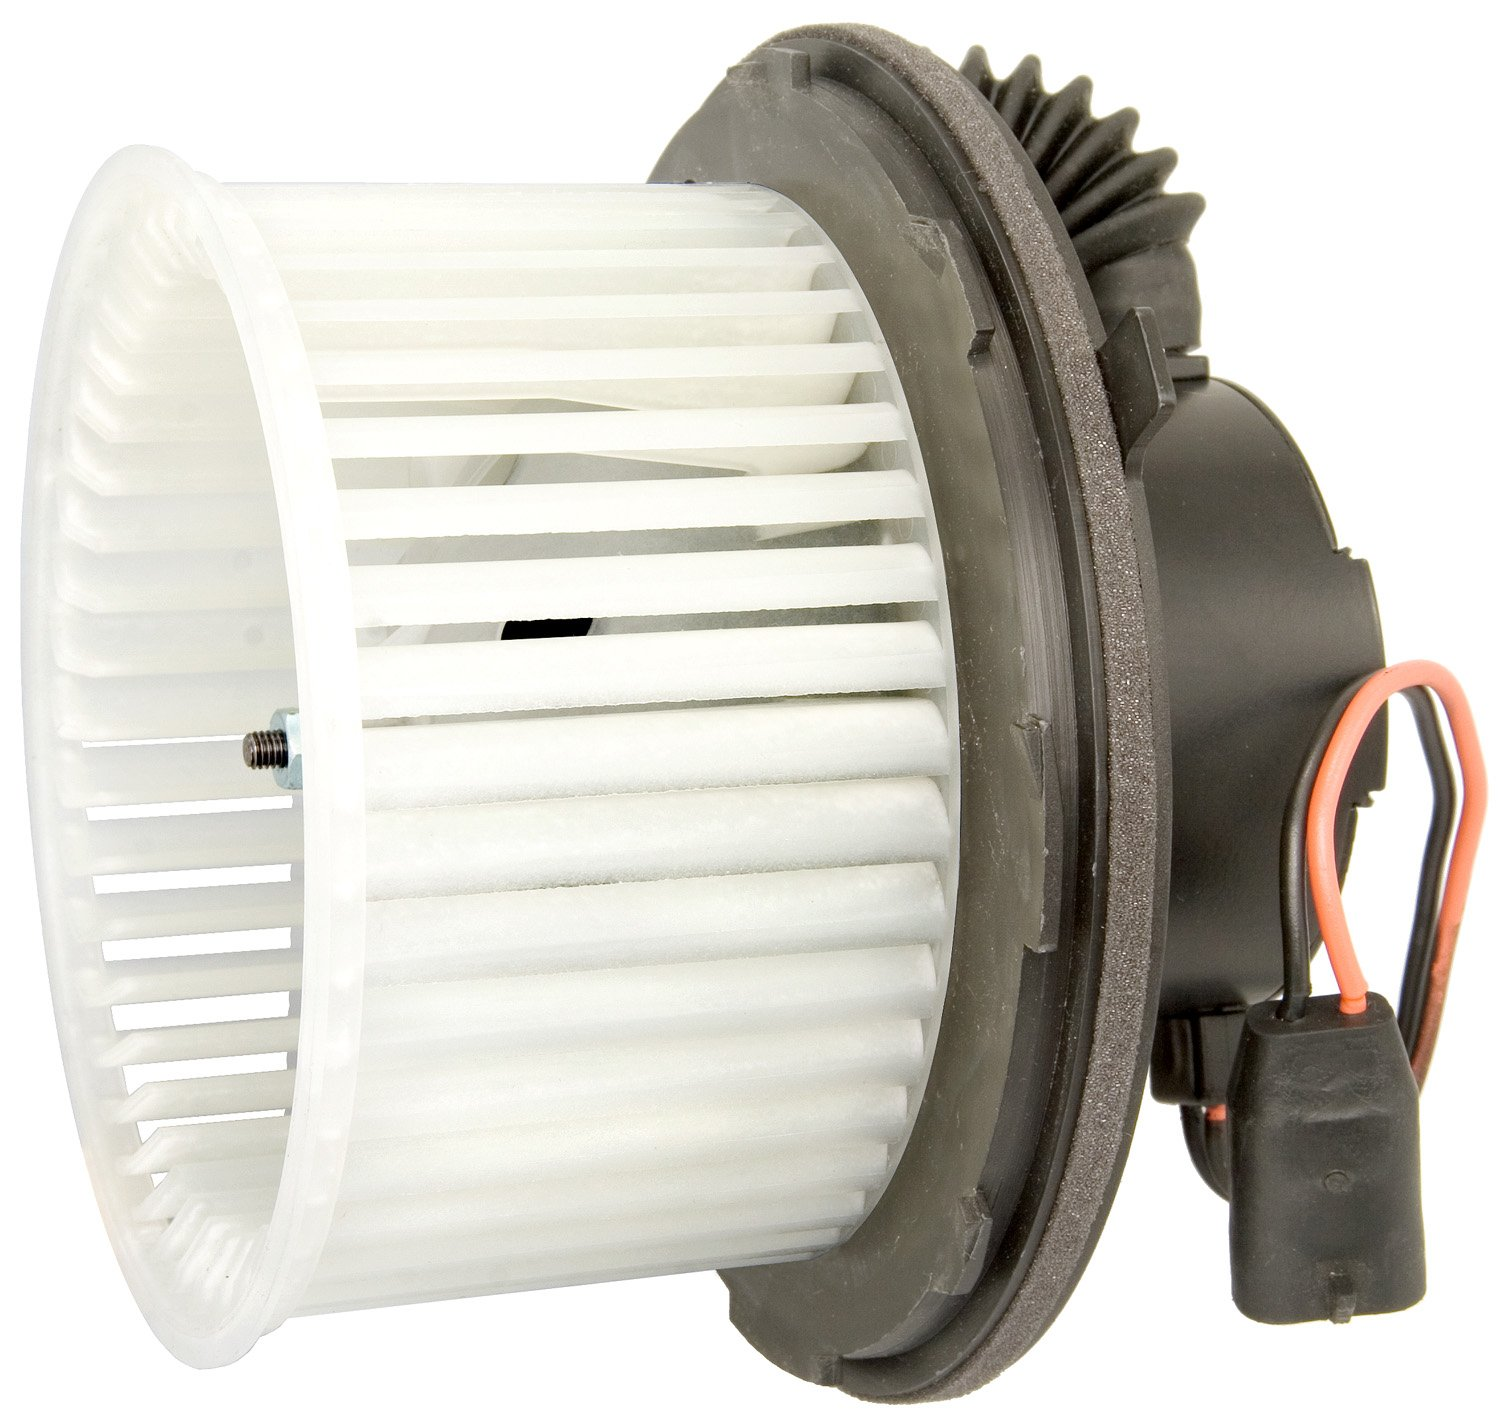 Four Seasons/Trumark 75748 Blower Motor with Wheel